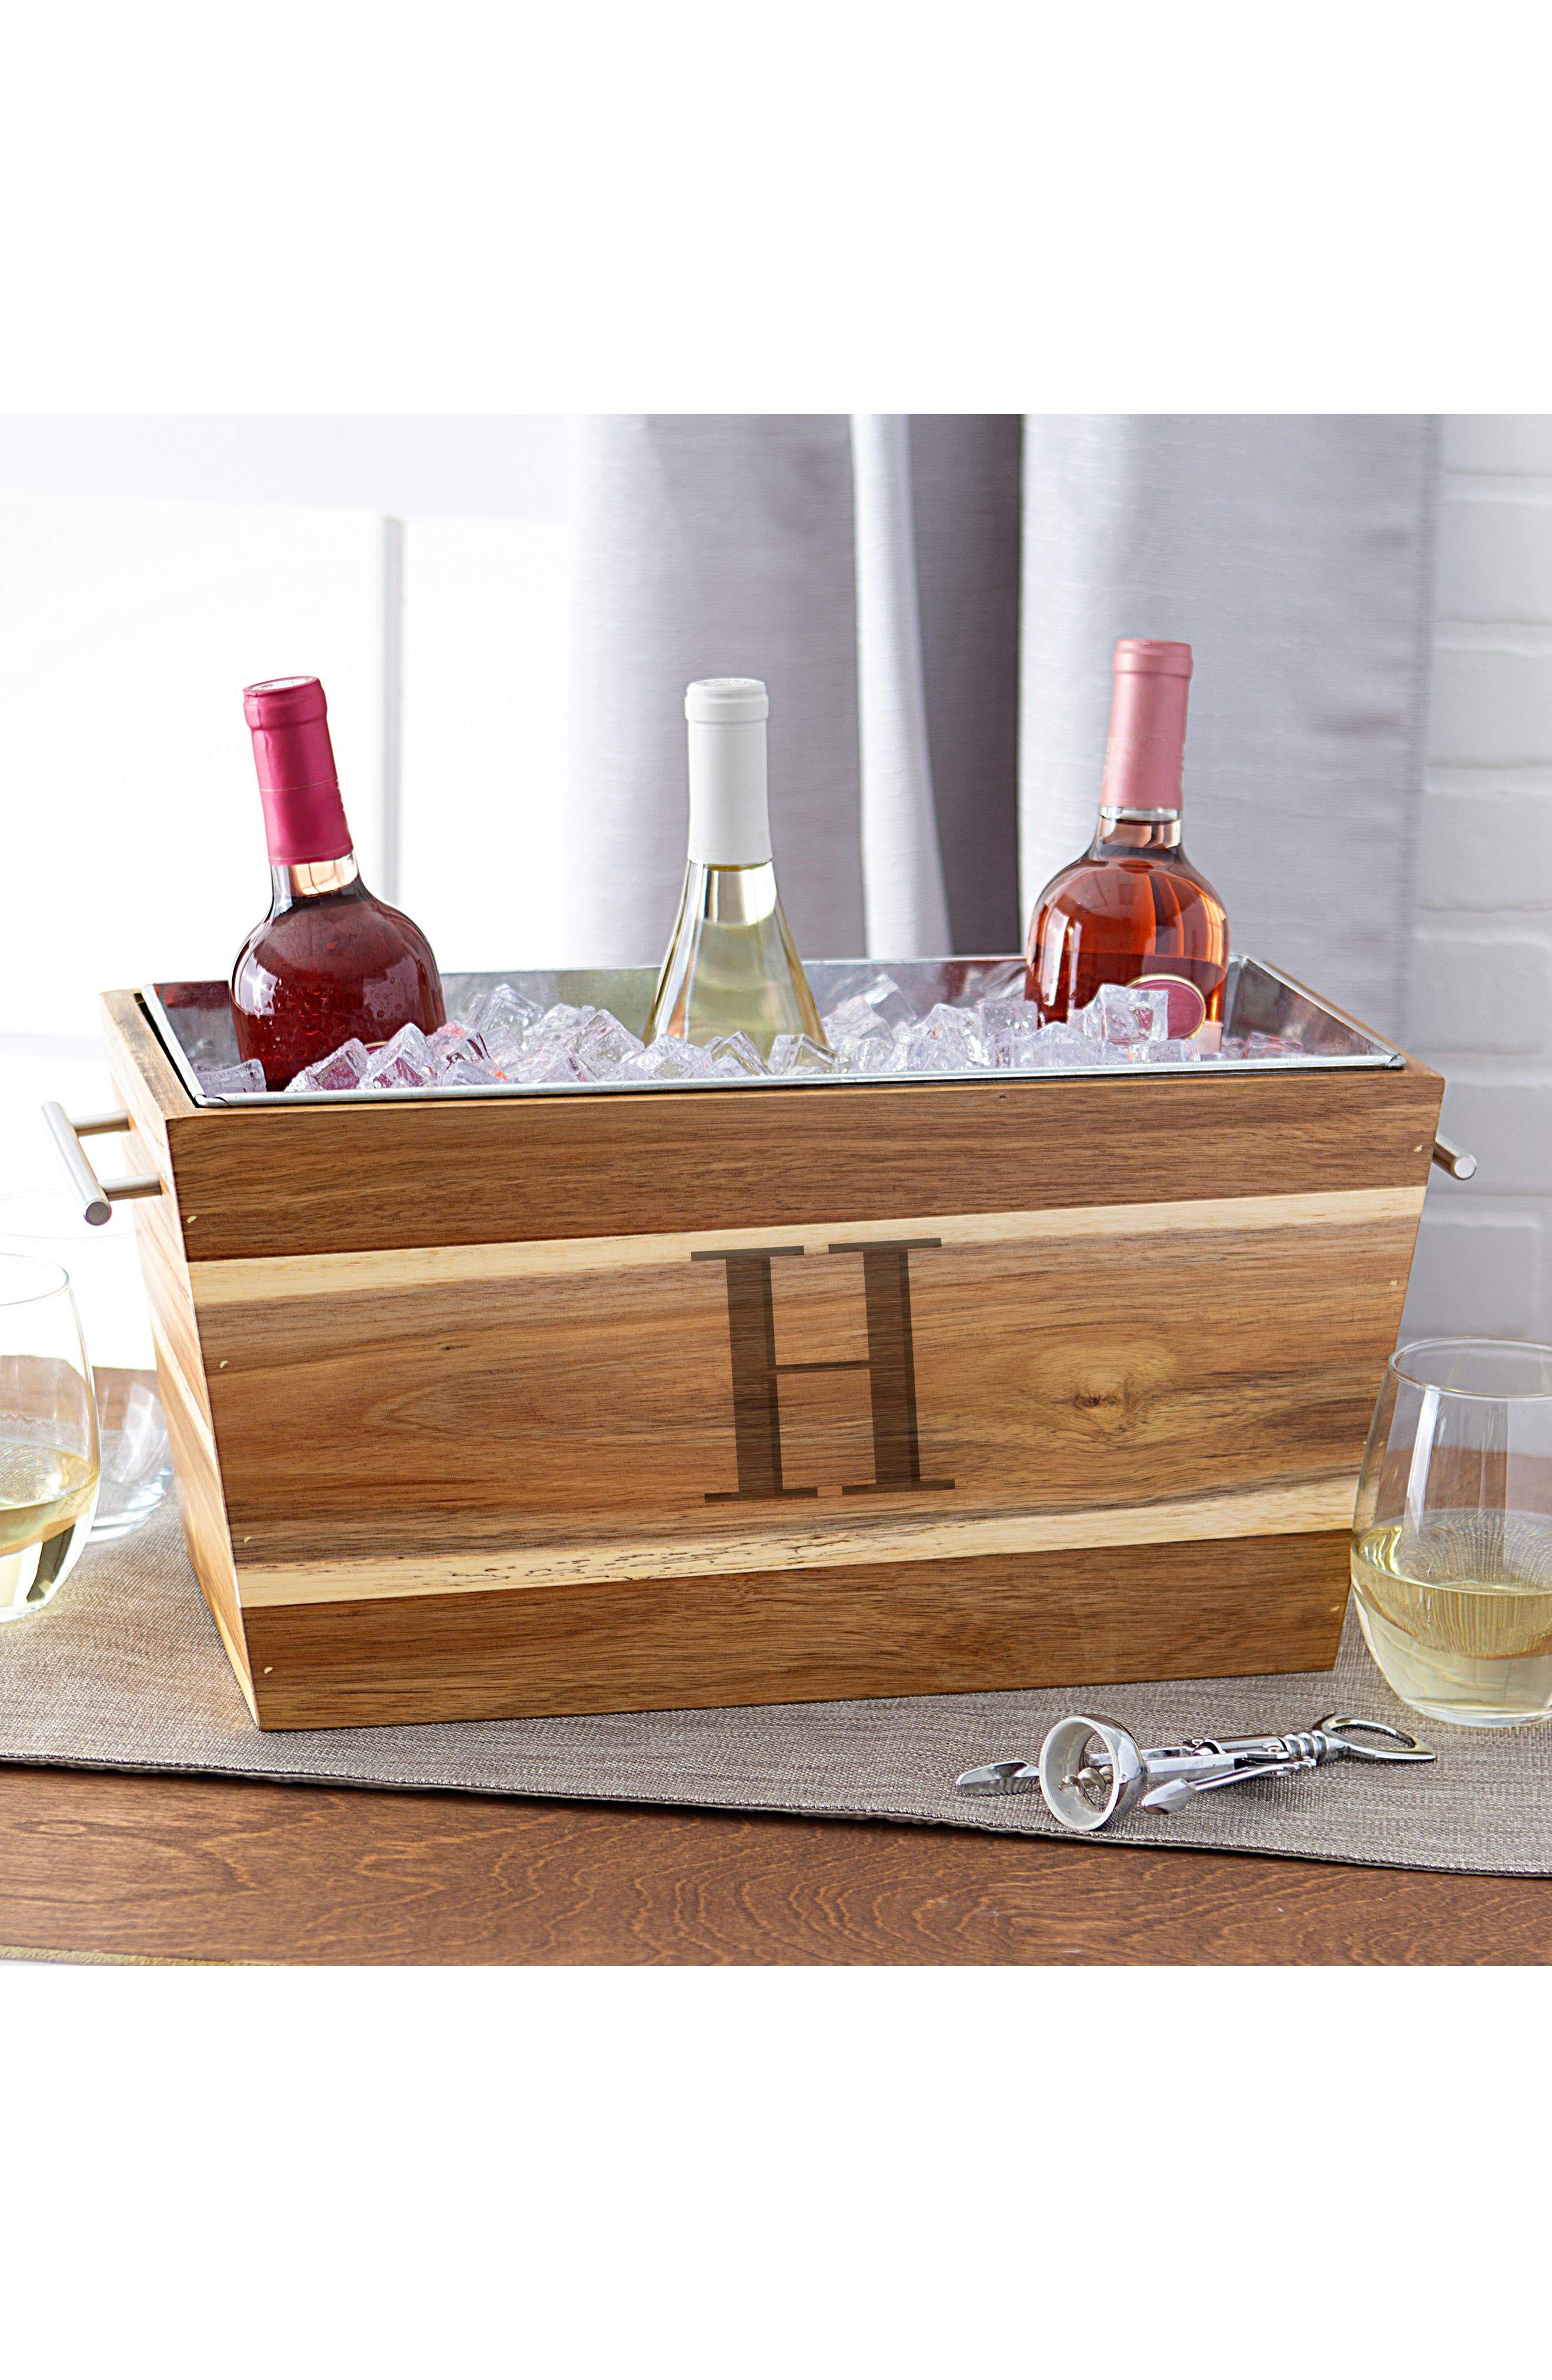 Monogram Wood Beverage Trough,                             Alternate thumbnail 5, color,                             200